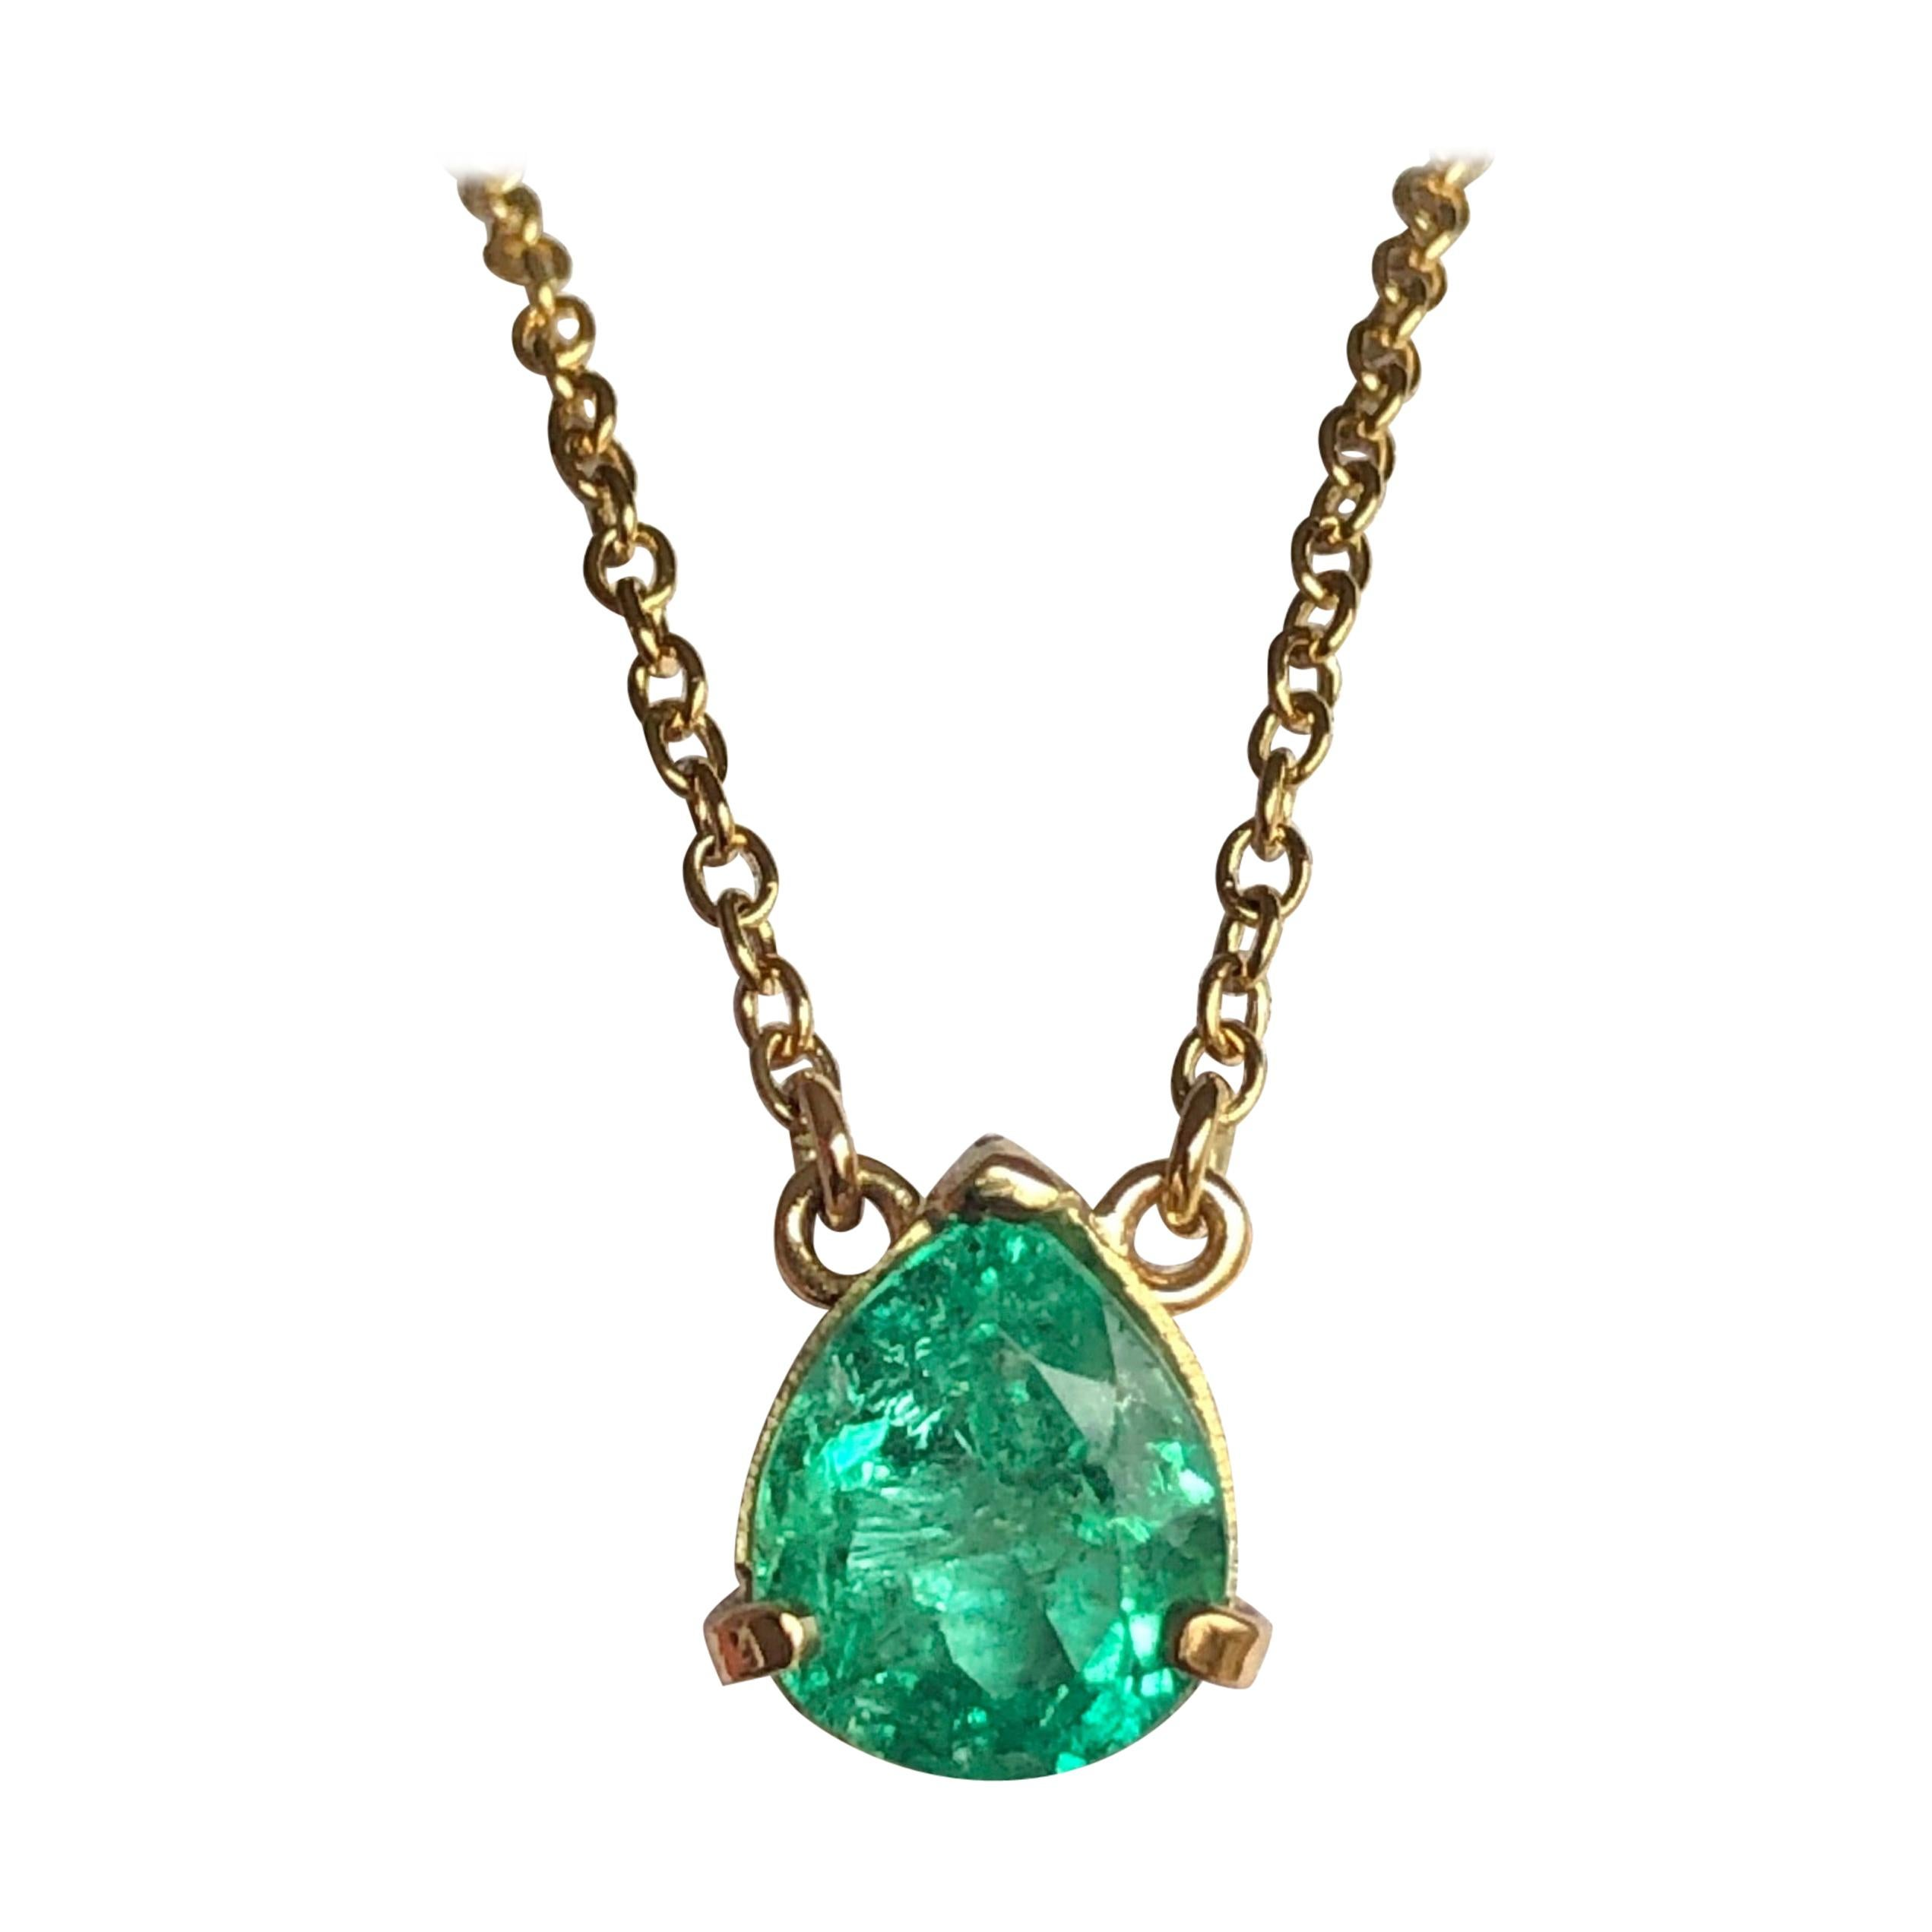 2.25 Carat Colombian Emerald Solitaire Pendant Necklace Yellow Gold 18k